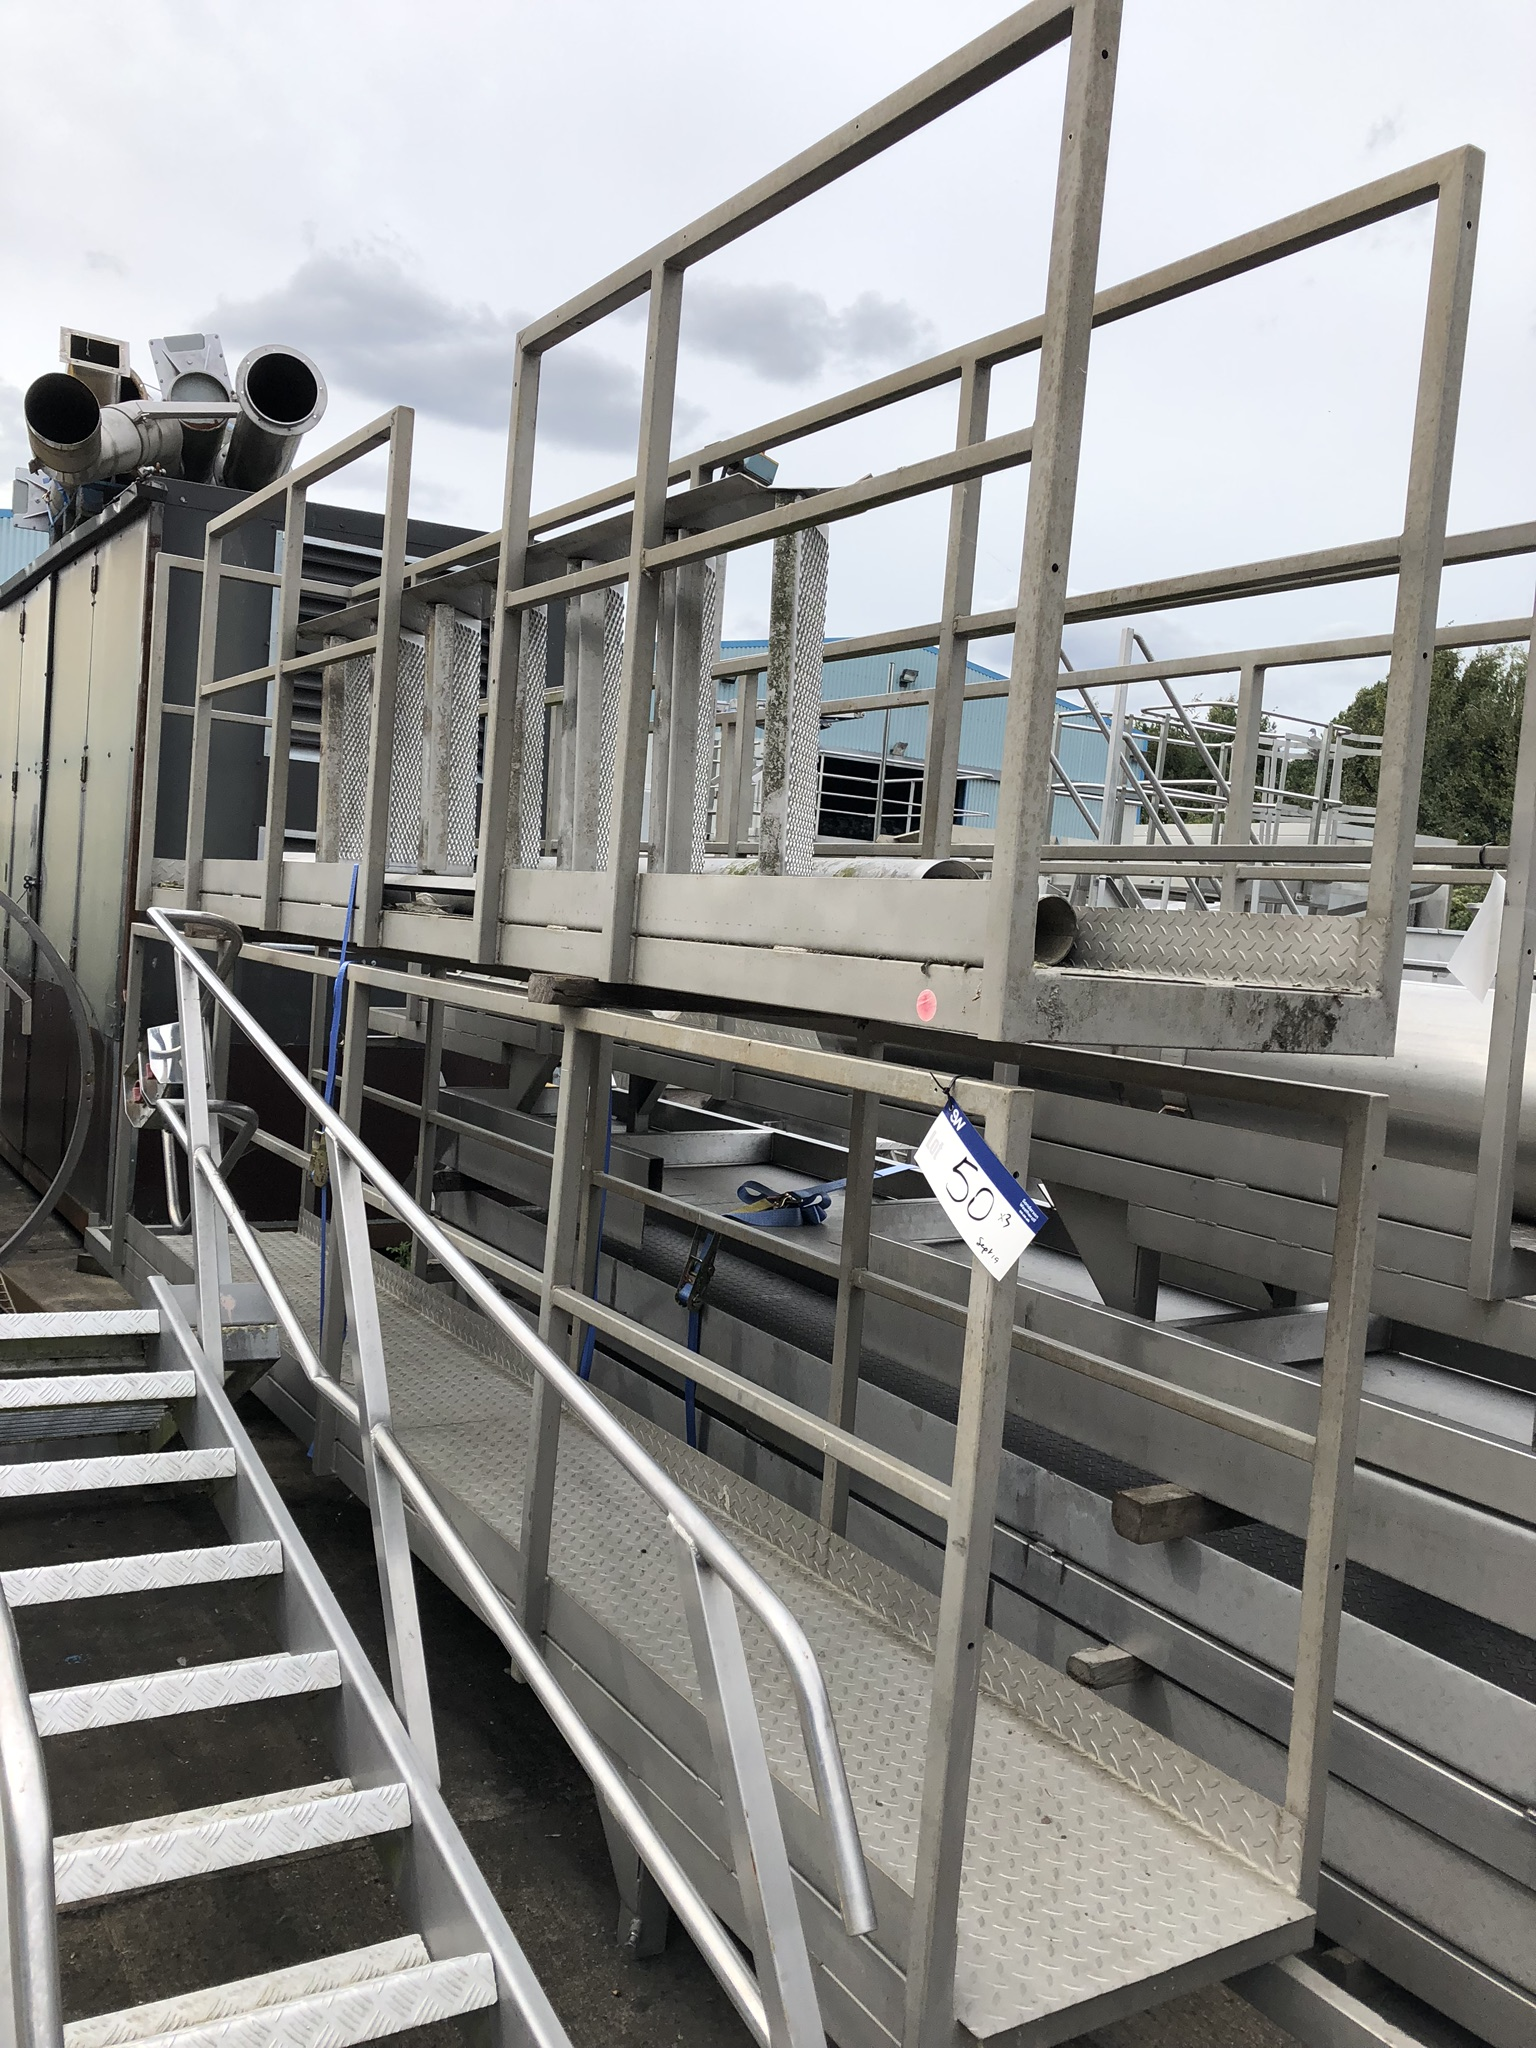 Two Section Stainless Steel Walkway Gantry, with side rails, approx. 5m long x 0.6m wide, lift out